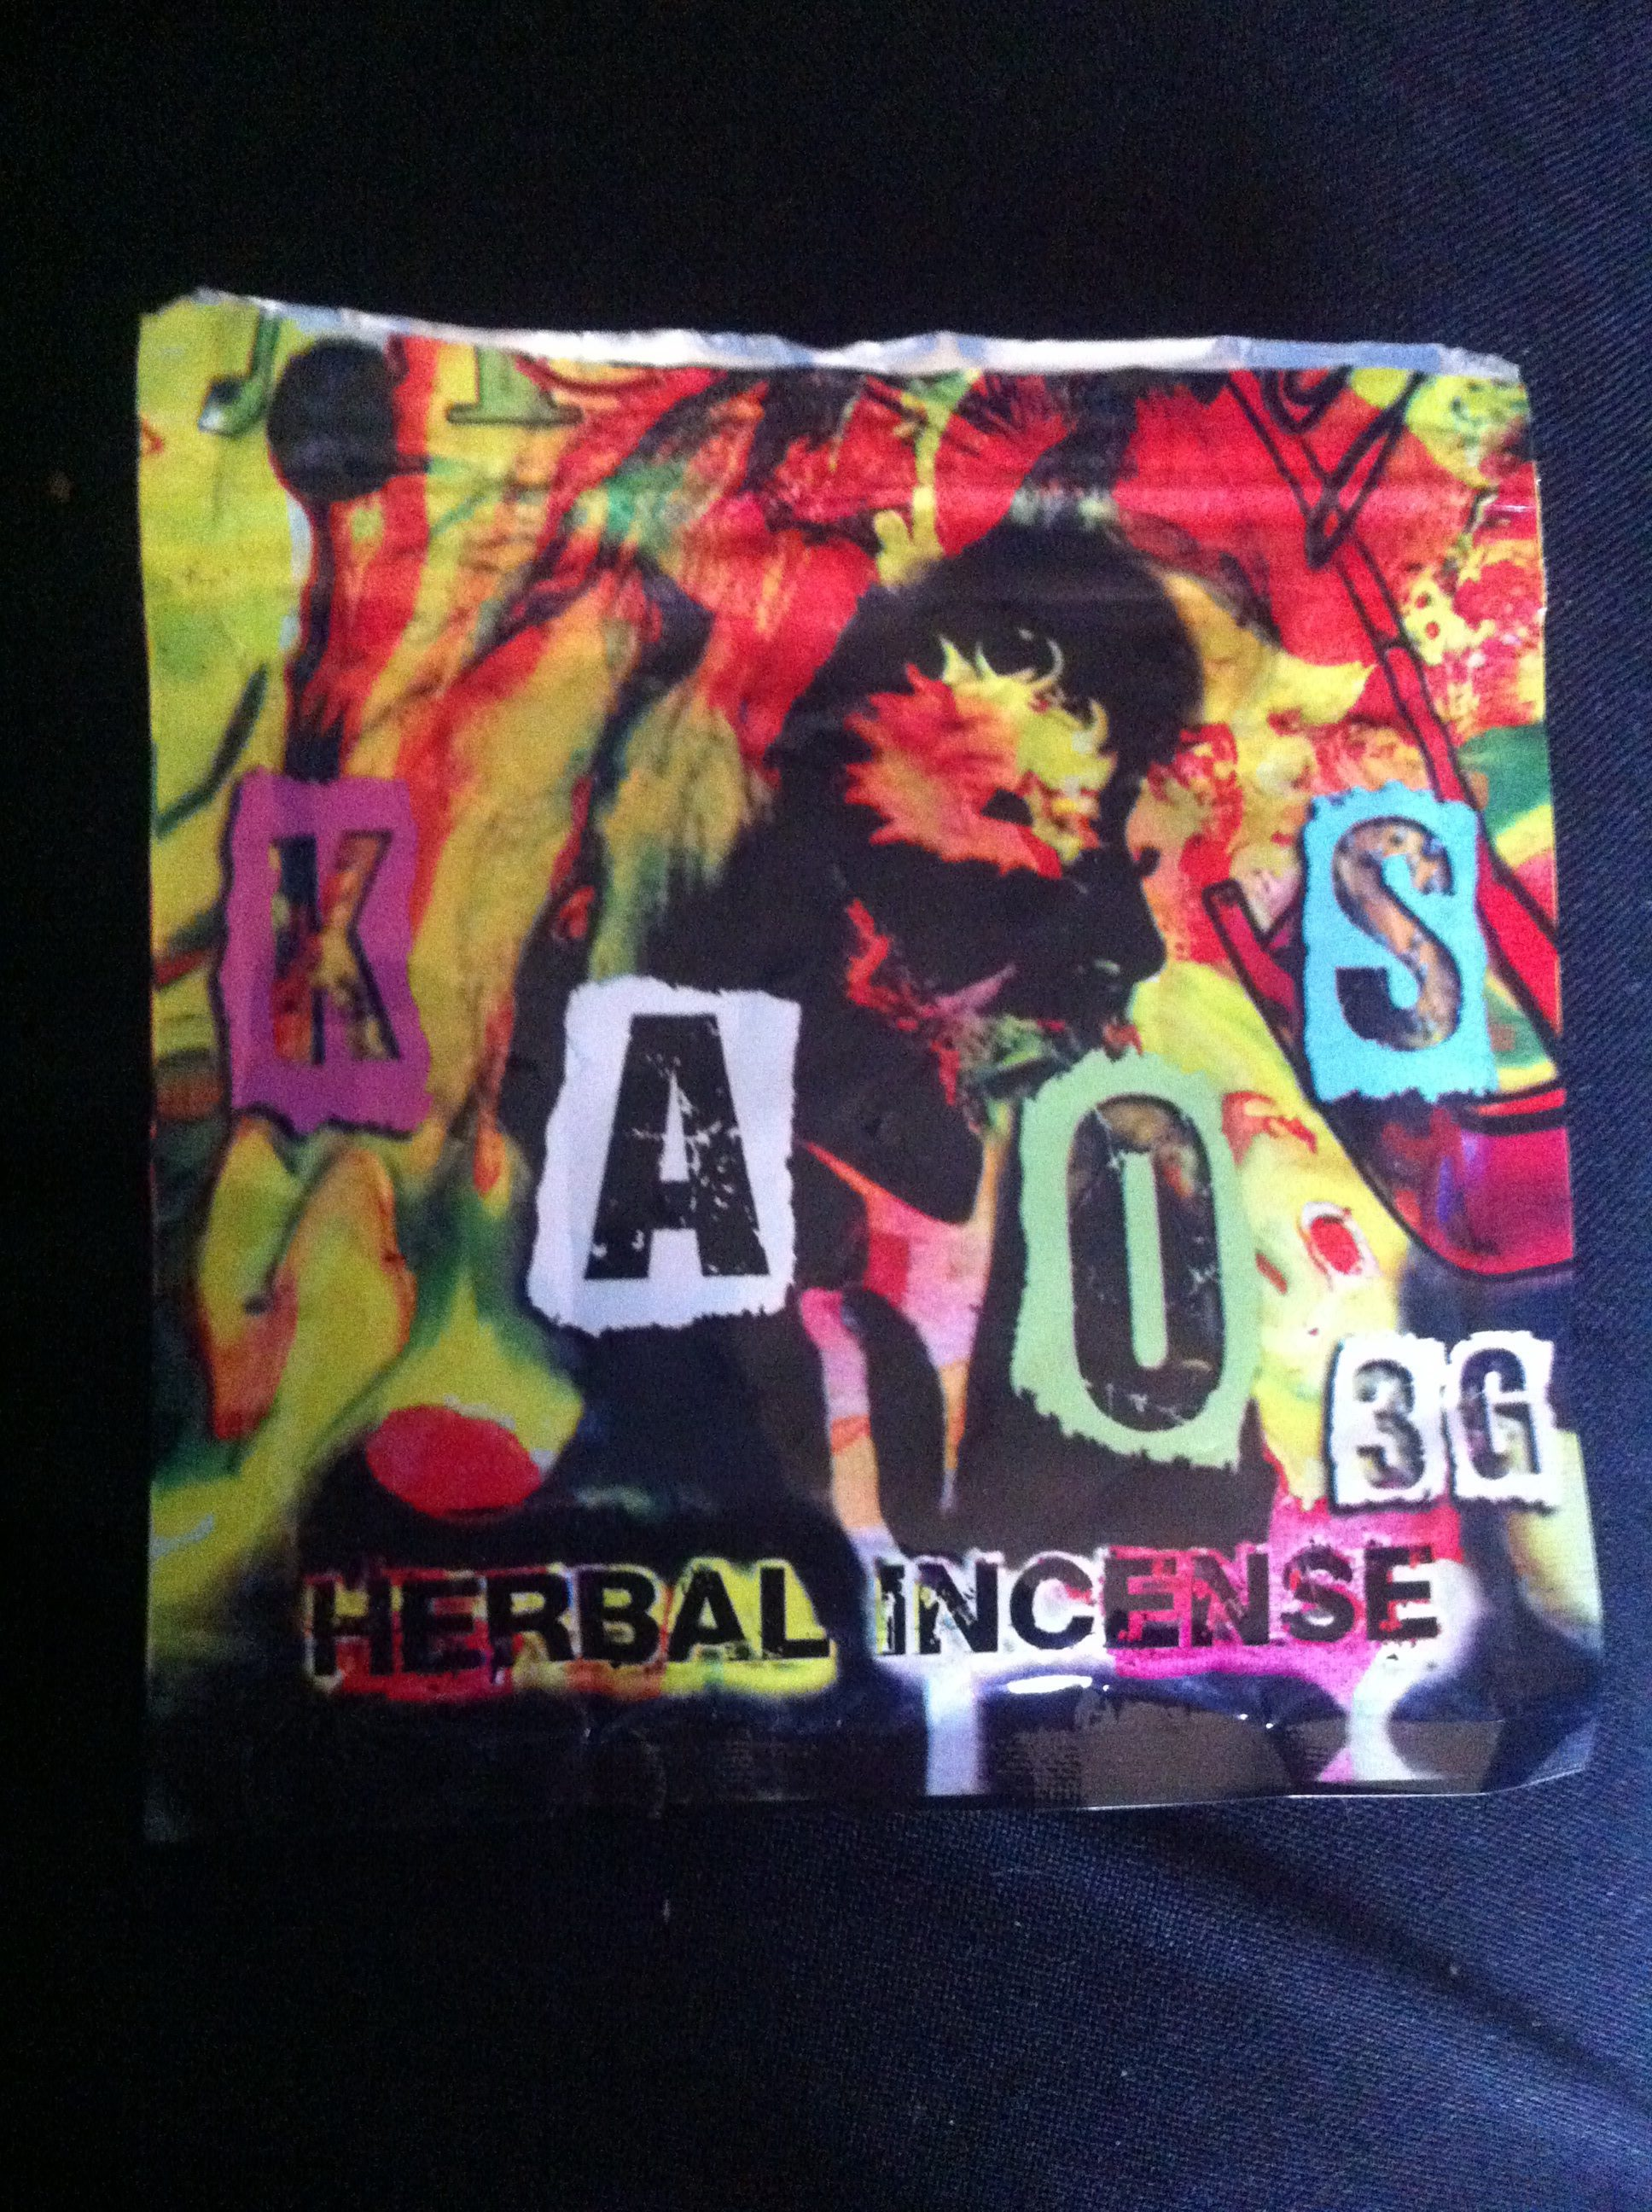 Kaos 3g and Head Trip 1.5g from Express Highs (Review)